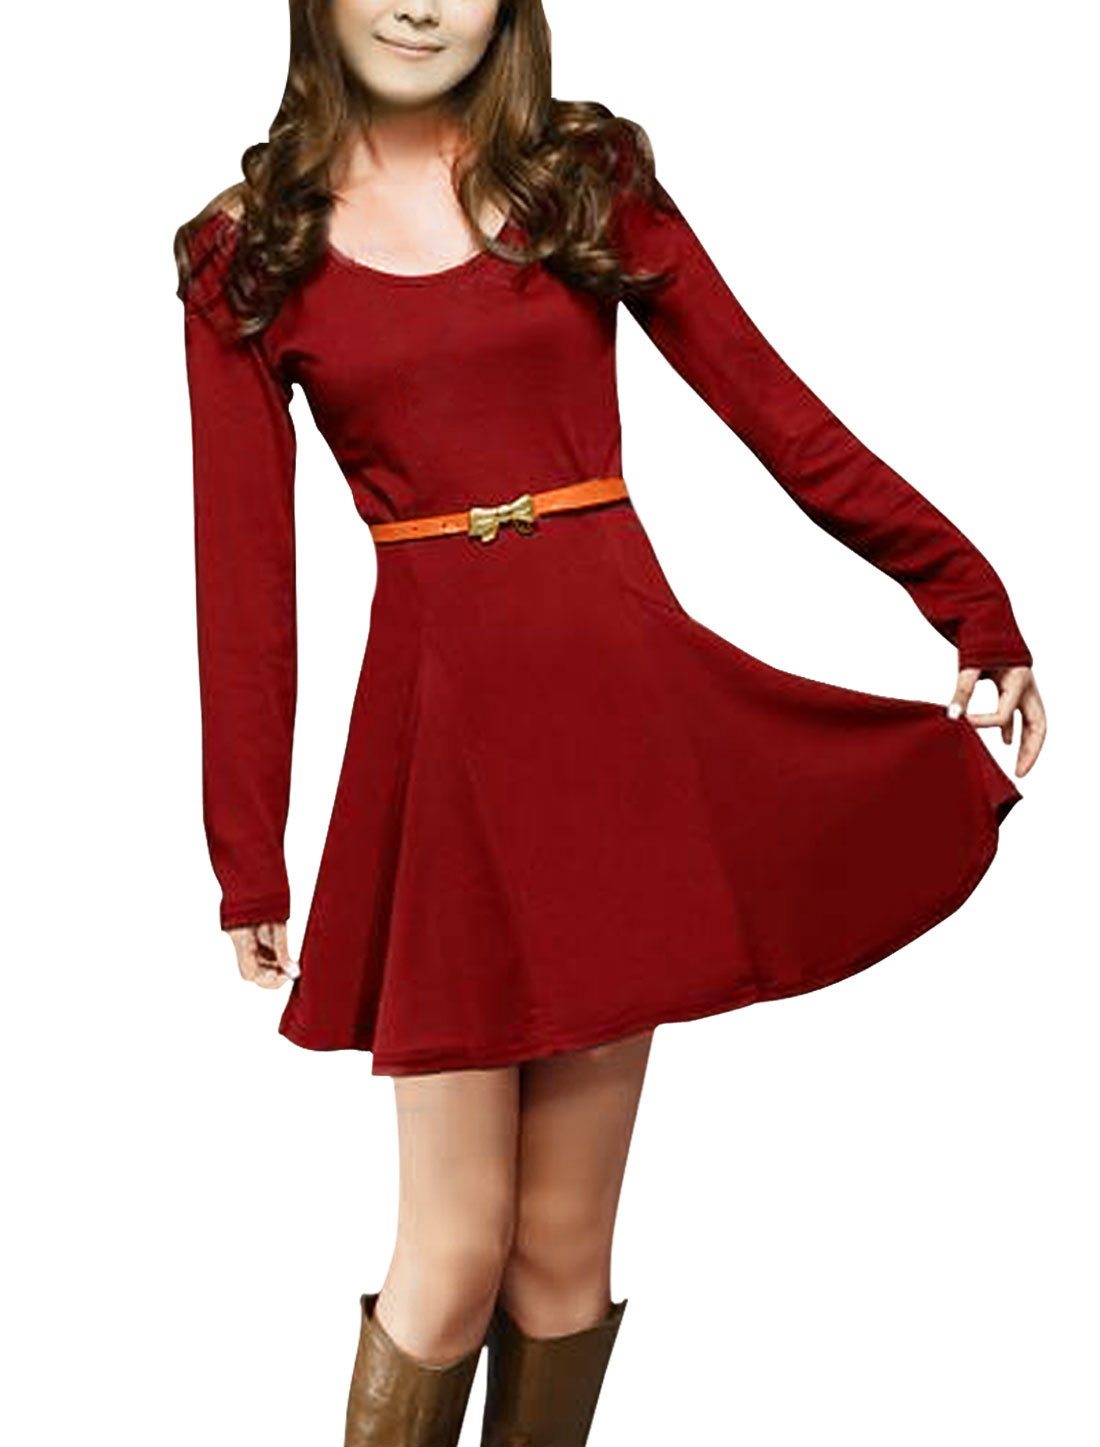 Ladies Scoop Neck Cut Out Shoulders Dress w Belt Burgundy M